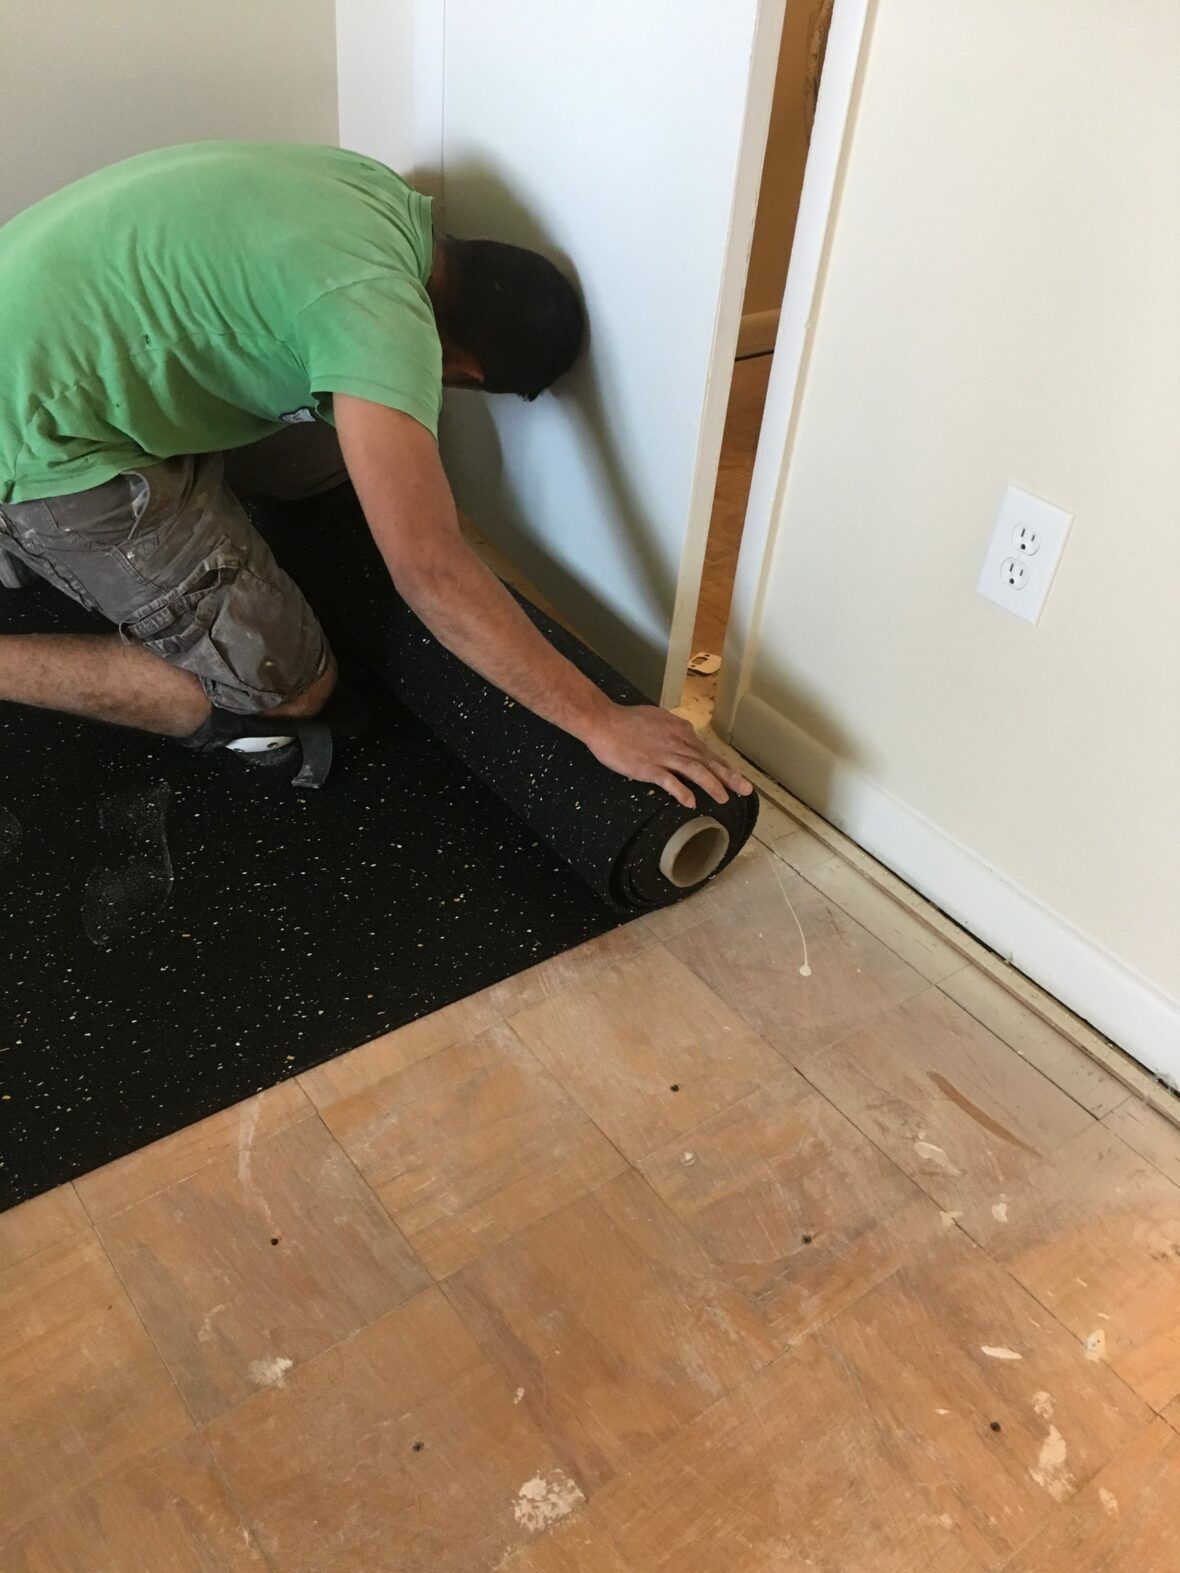 trimming Floor fighter for combating foot noise to soundproof a floor